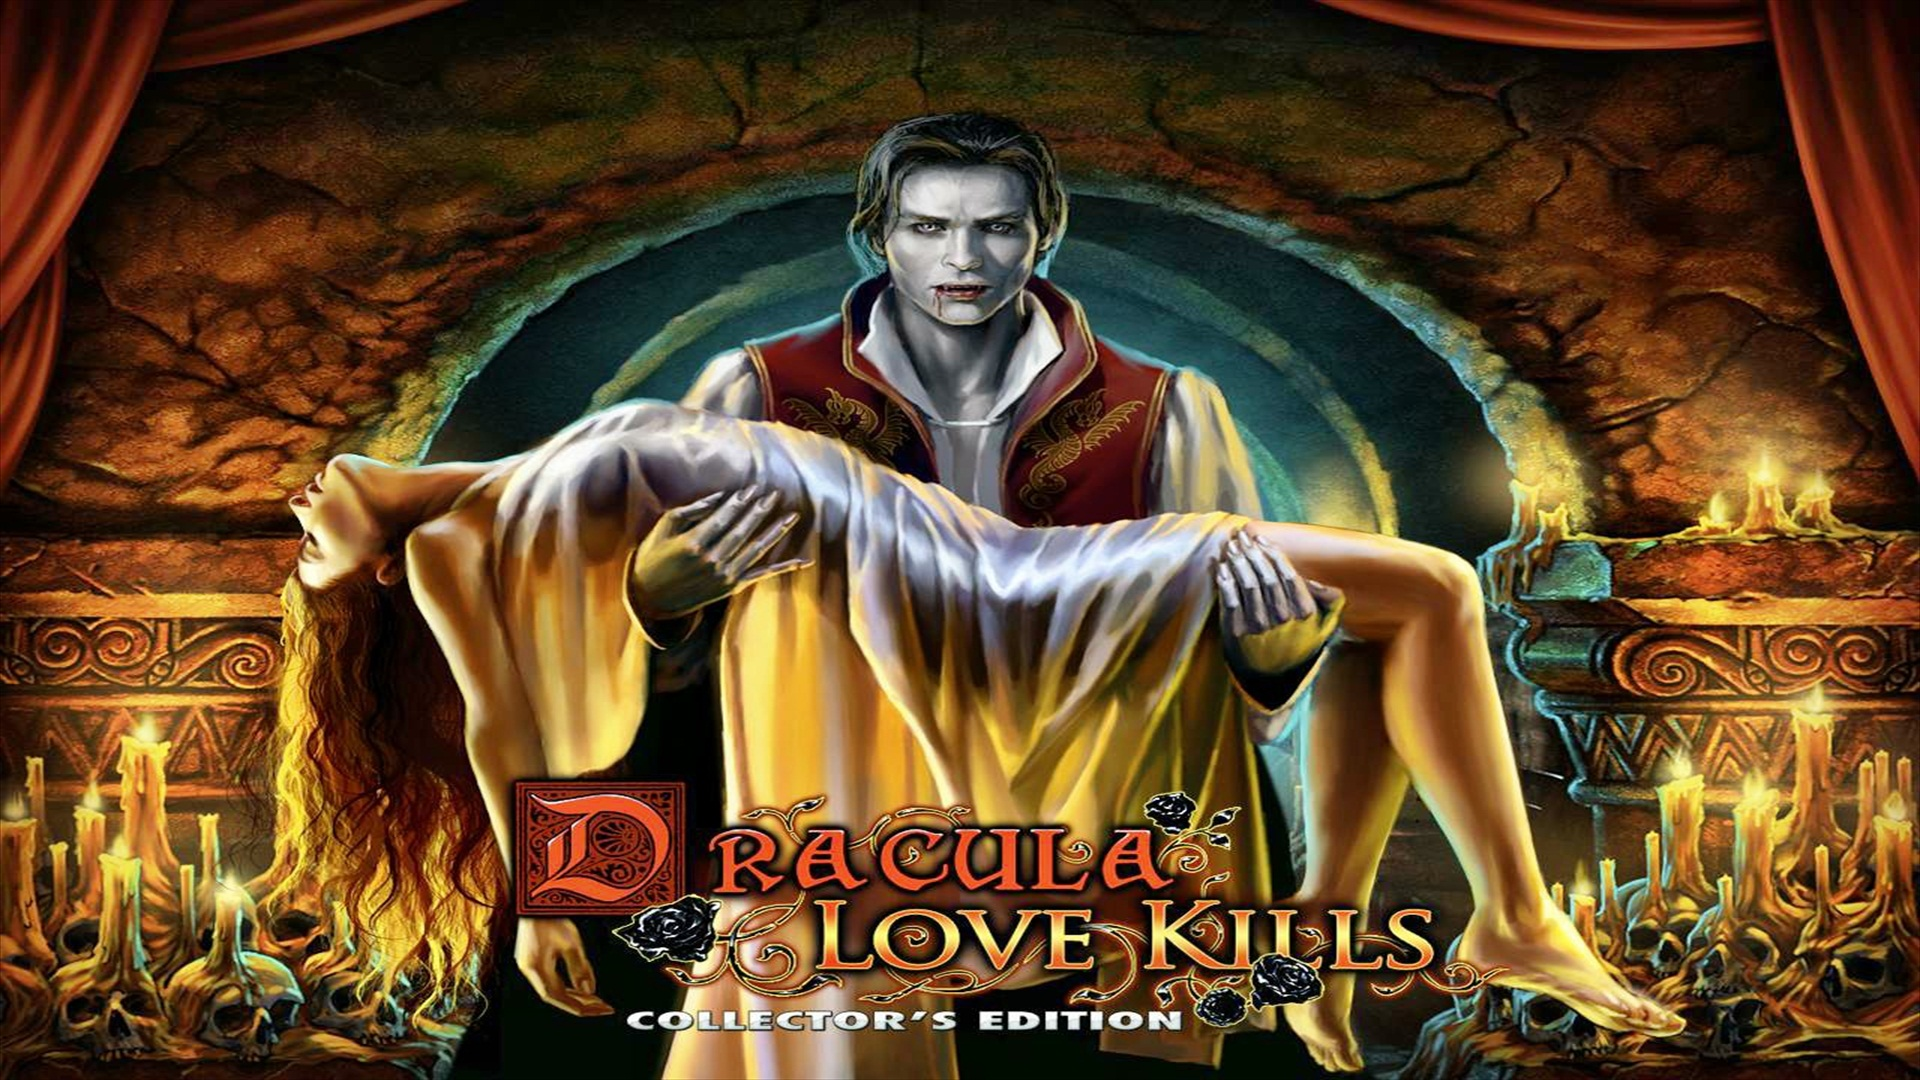 Love Kills Wallpapers : 6 Dracula: Love Kills HD Wallpapers Backgrounds ...